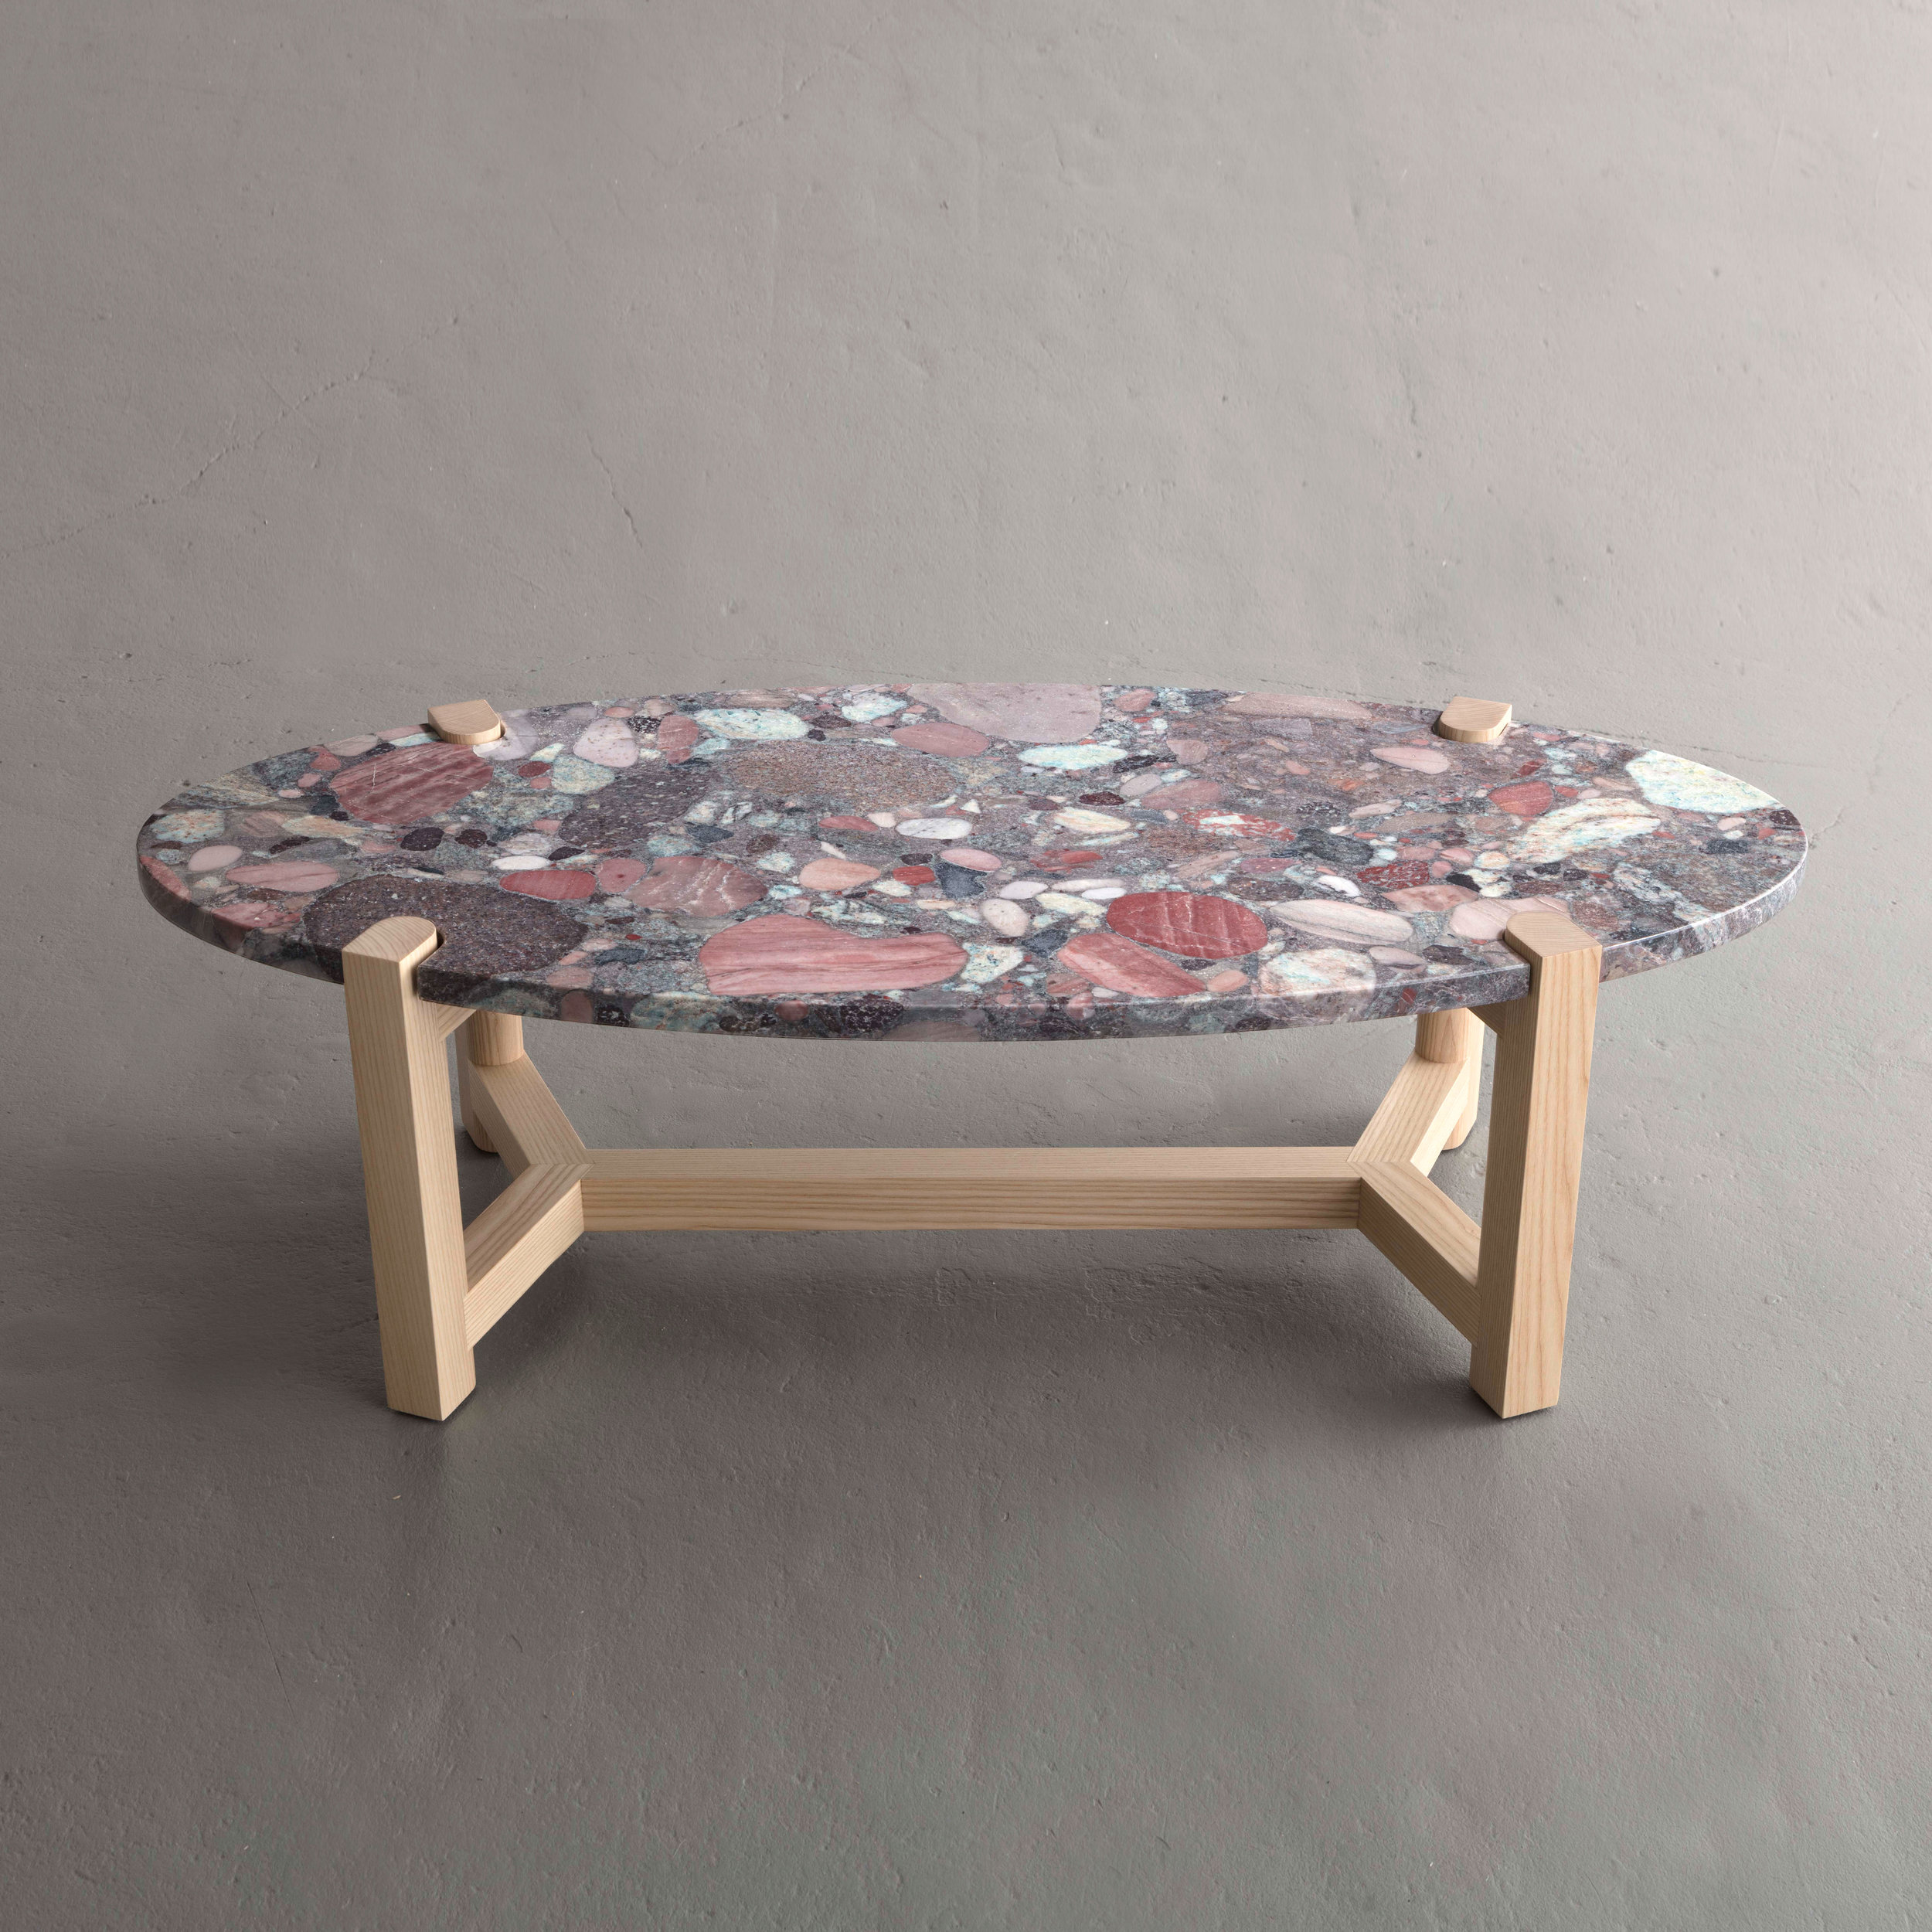 Pierce Coffee Table in ash and Blue Aquarius Granite